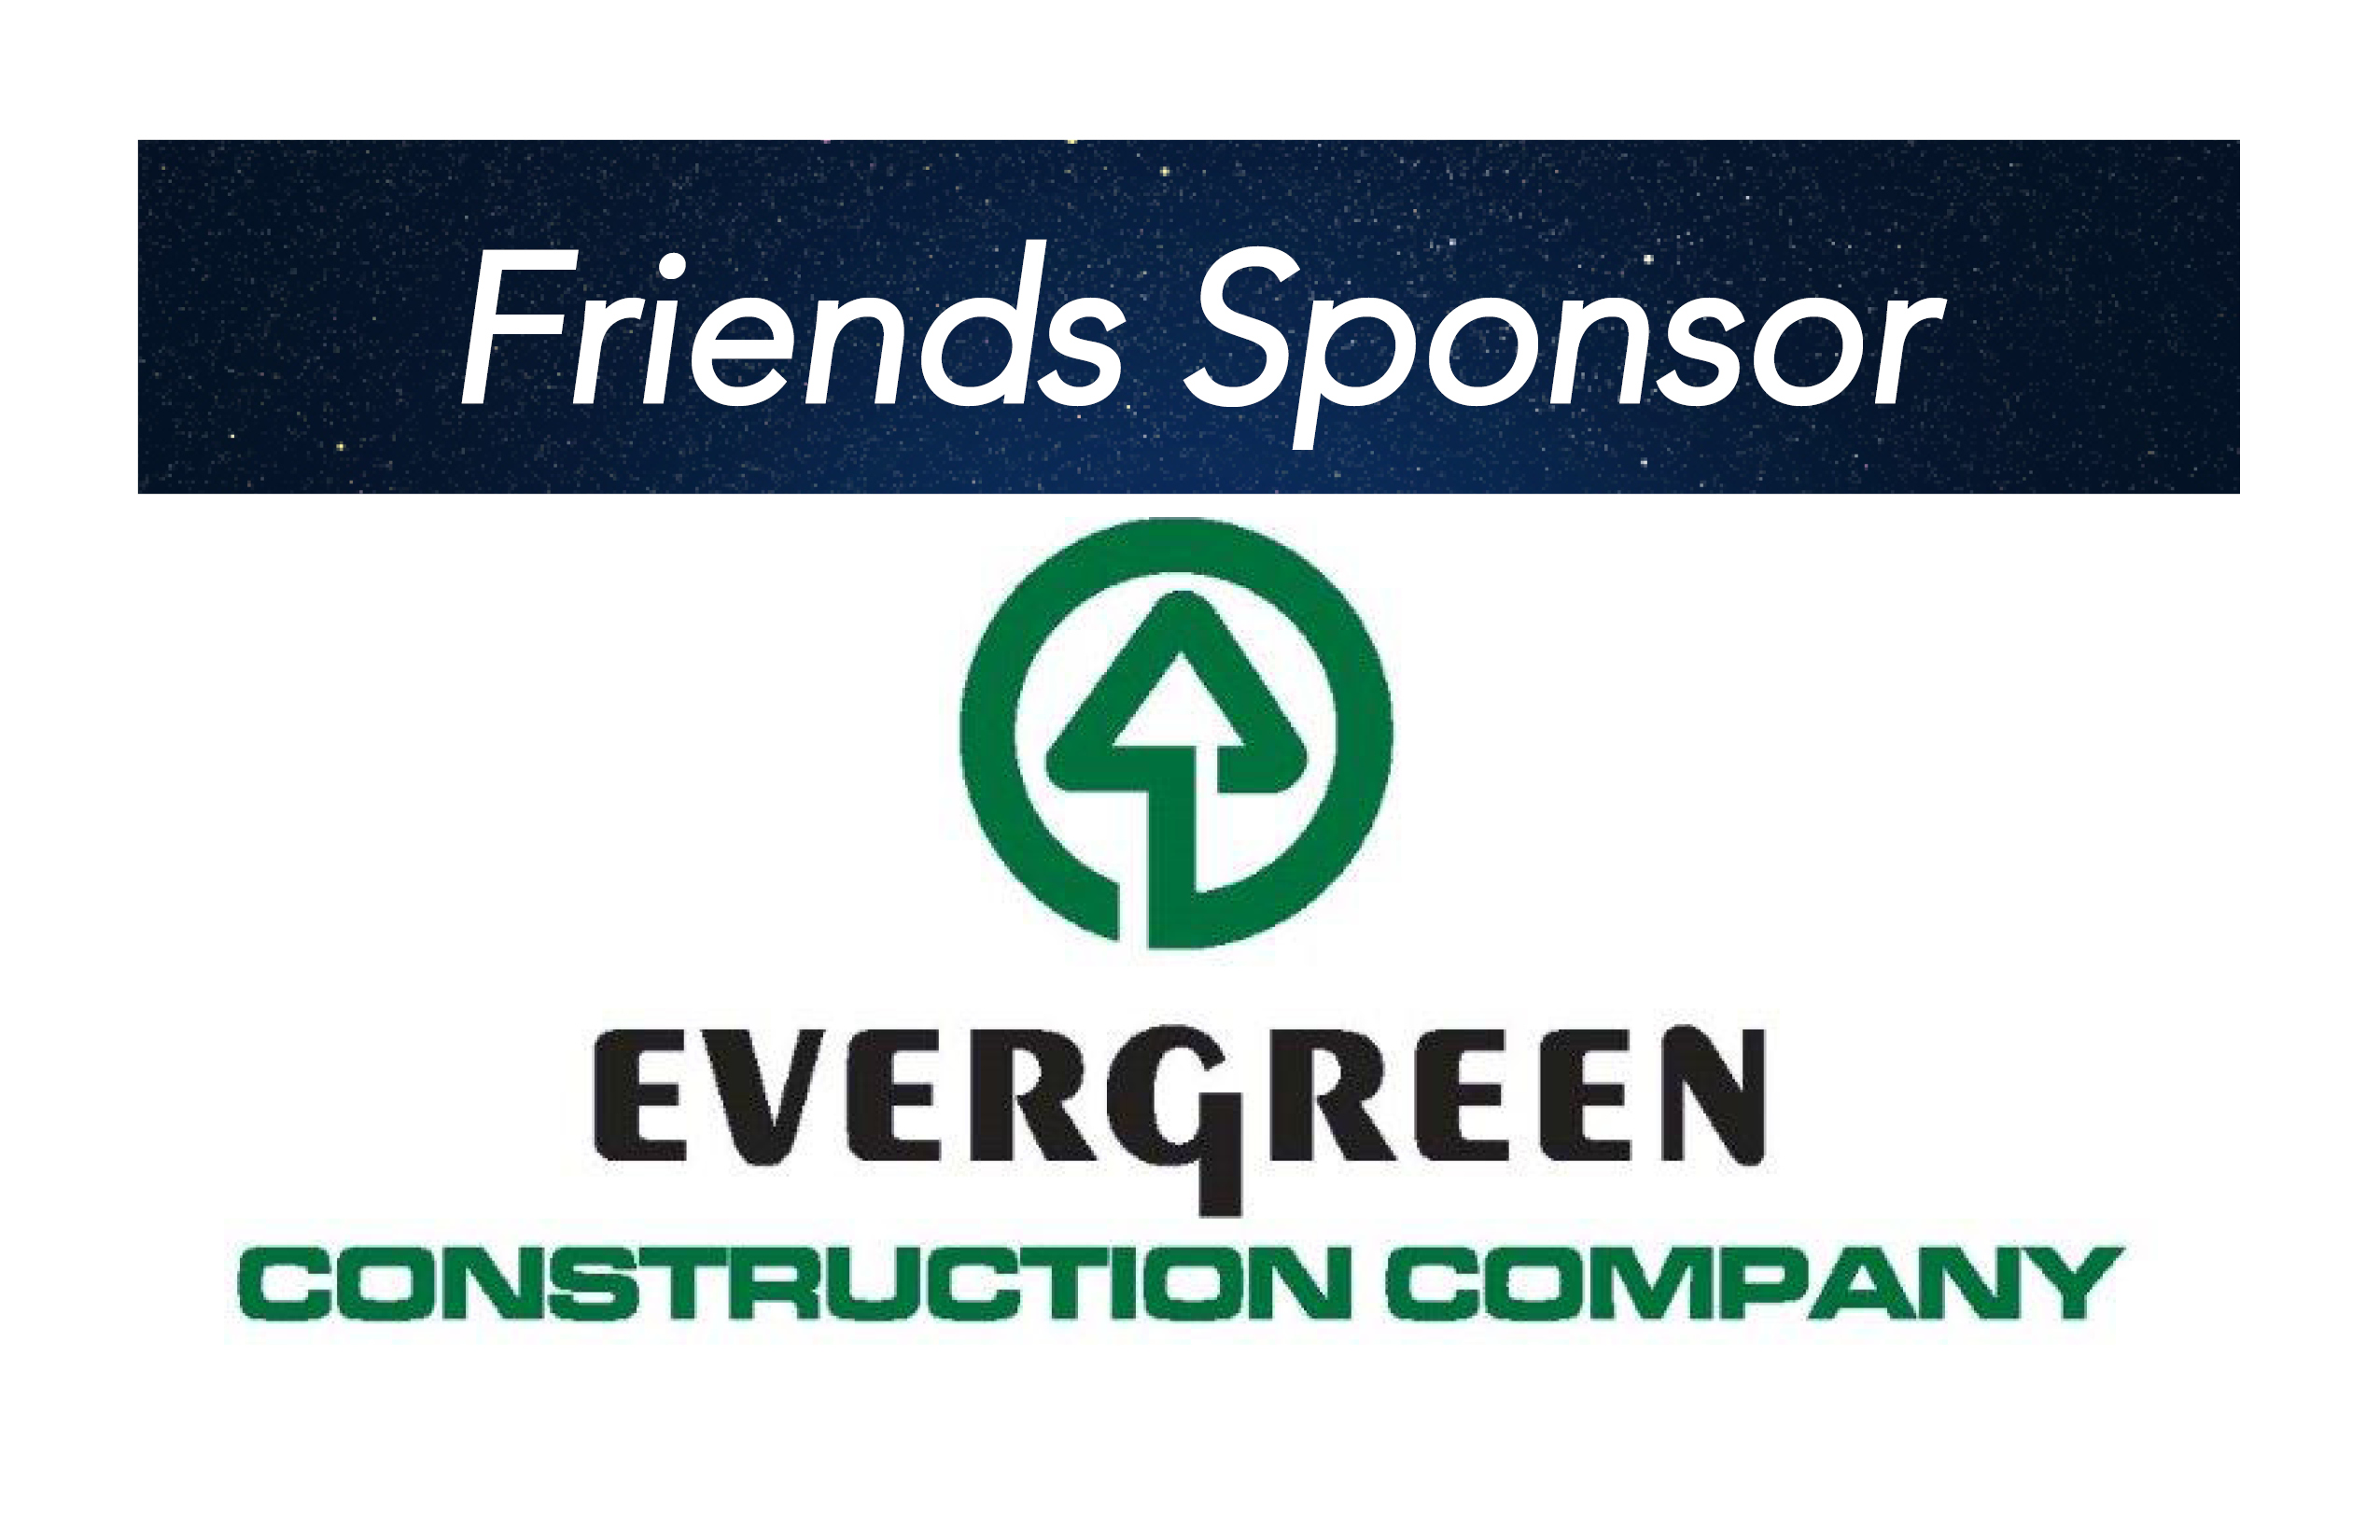 Evergreen Construction, Friends Sponsor